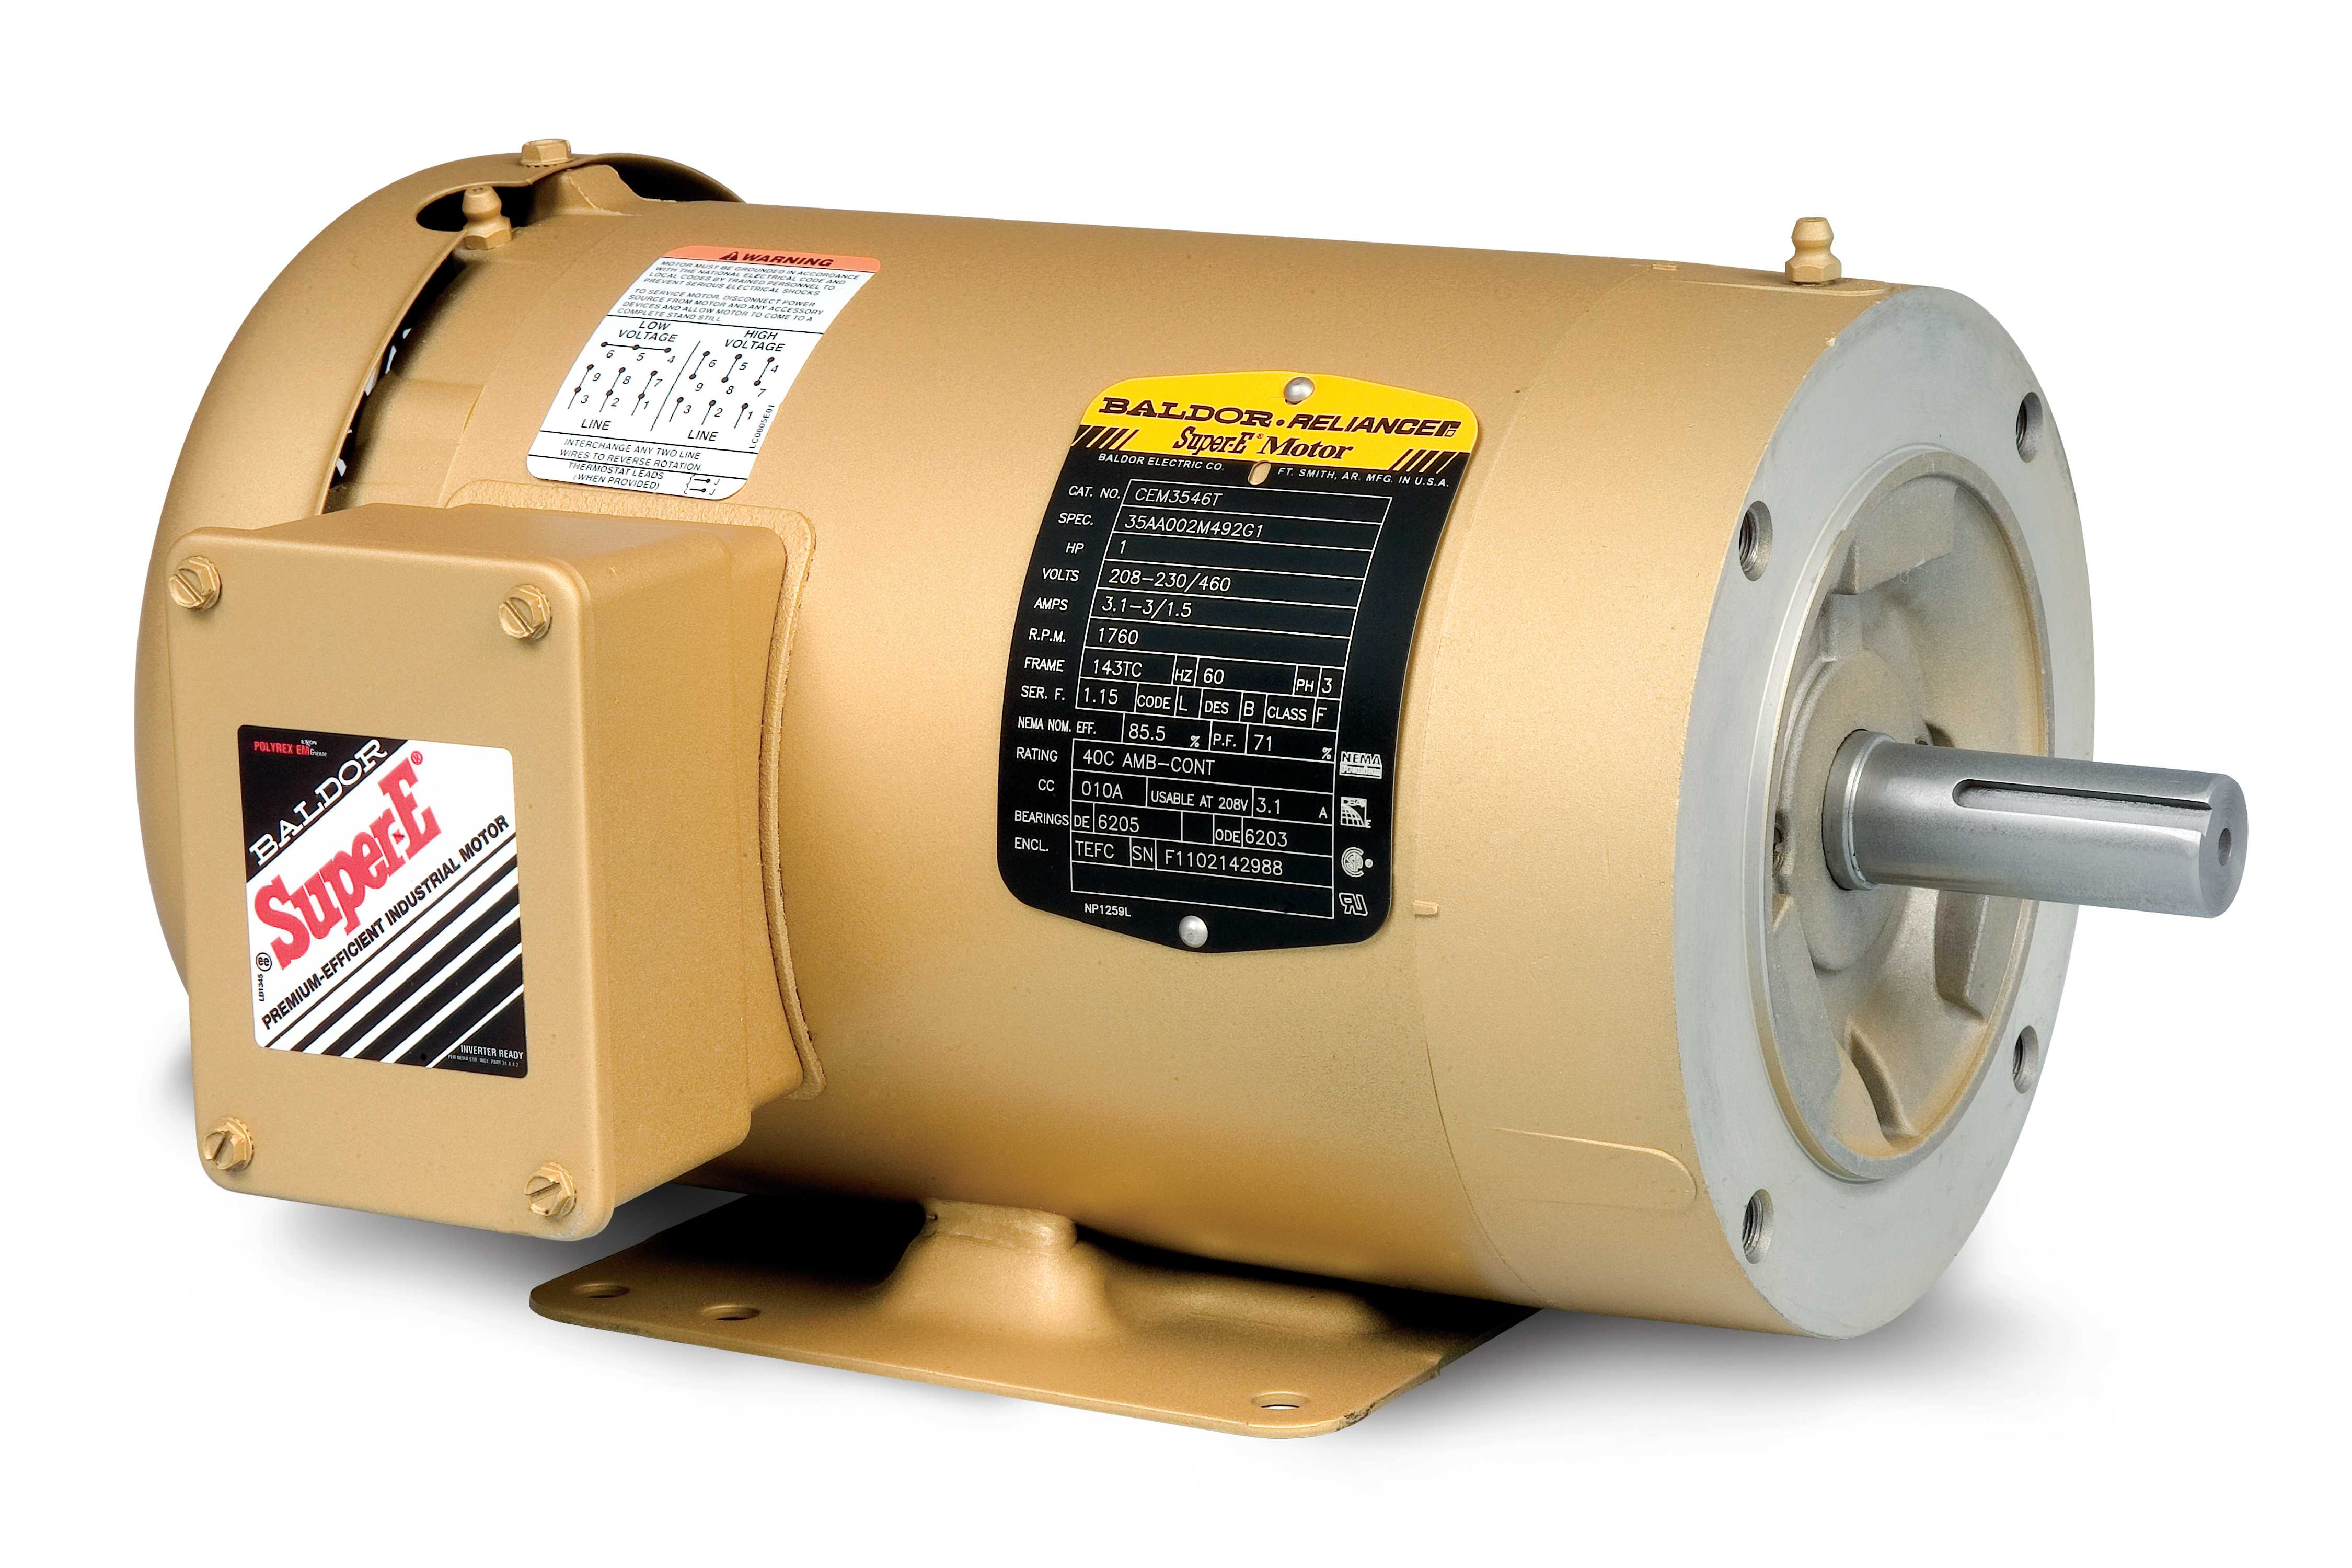 Abb company profile supplier information for Abb electric motor catalogue